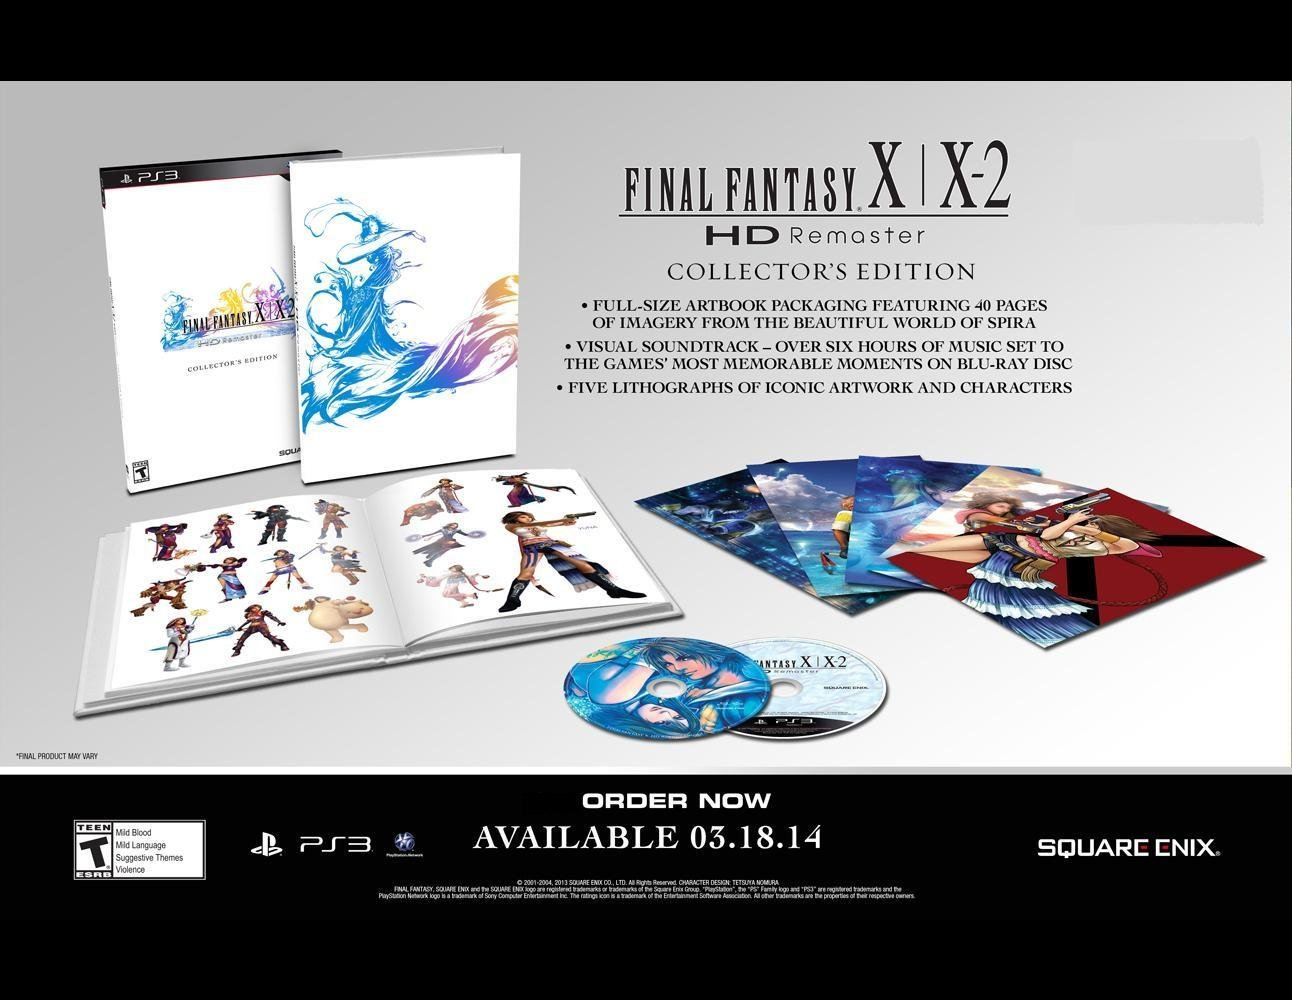 Final Fantasy X | X-2 HD Remaster Collector's Edition